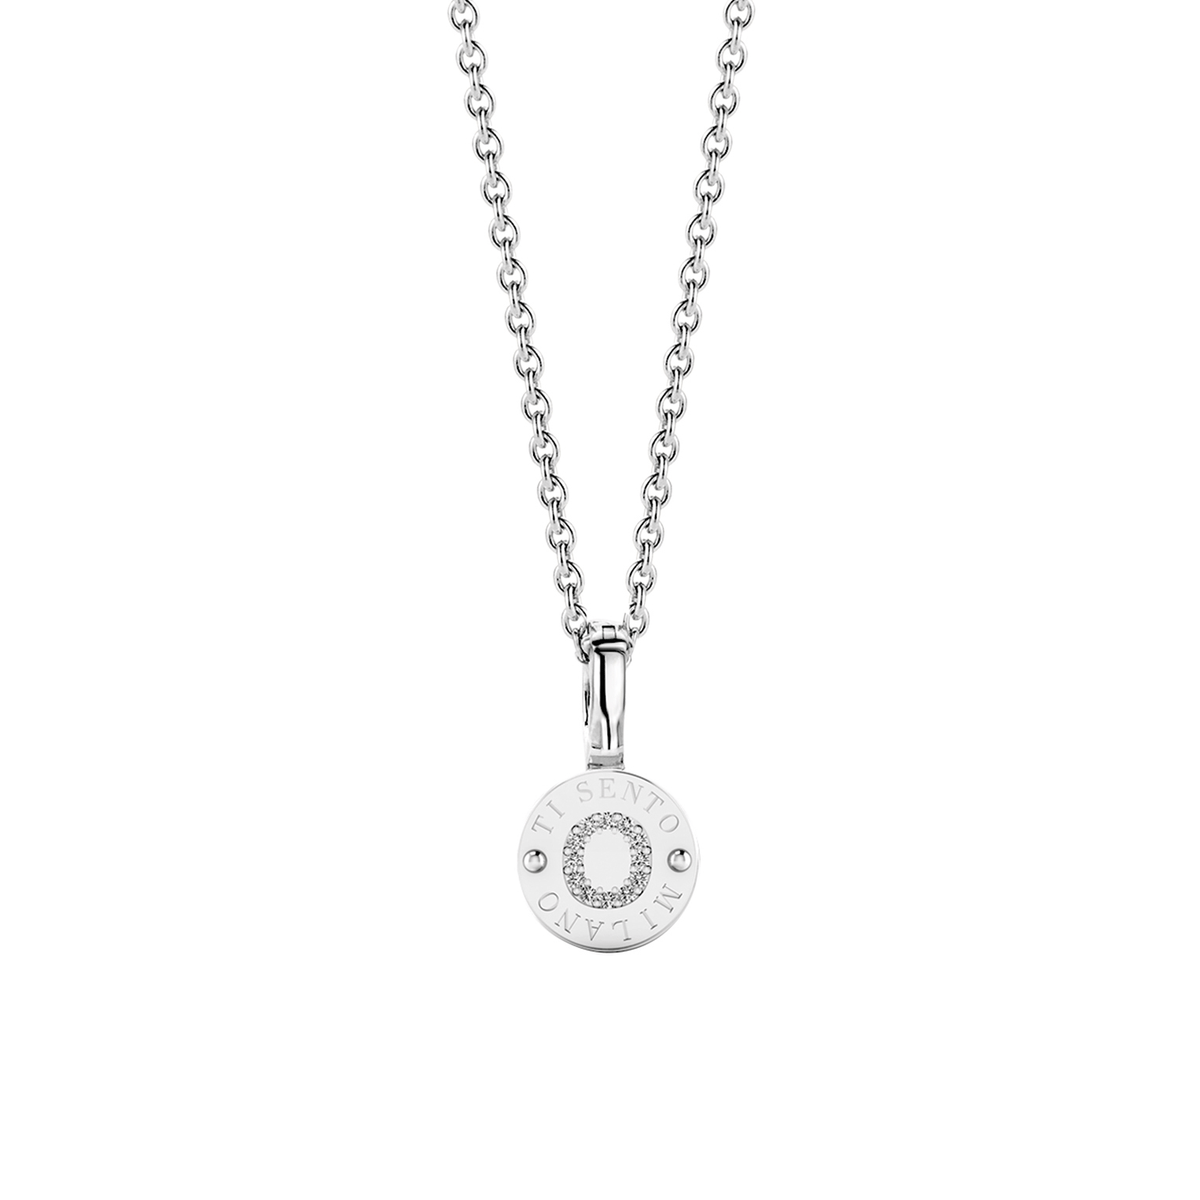 TI SENTO - Milano Necklace 3858LO